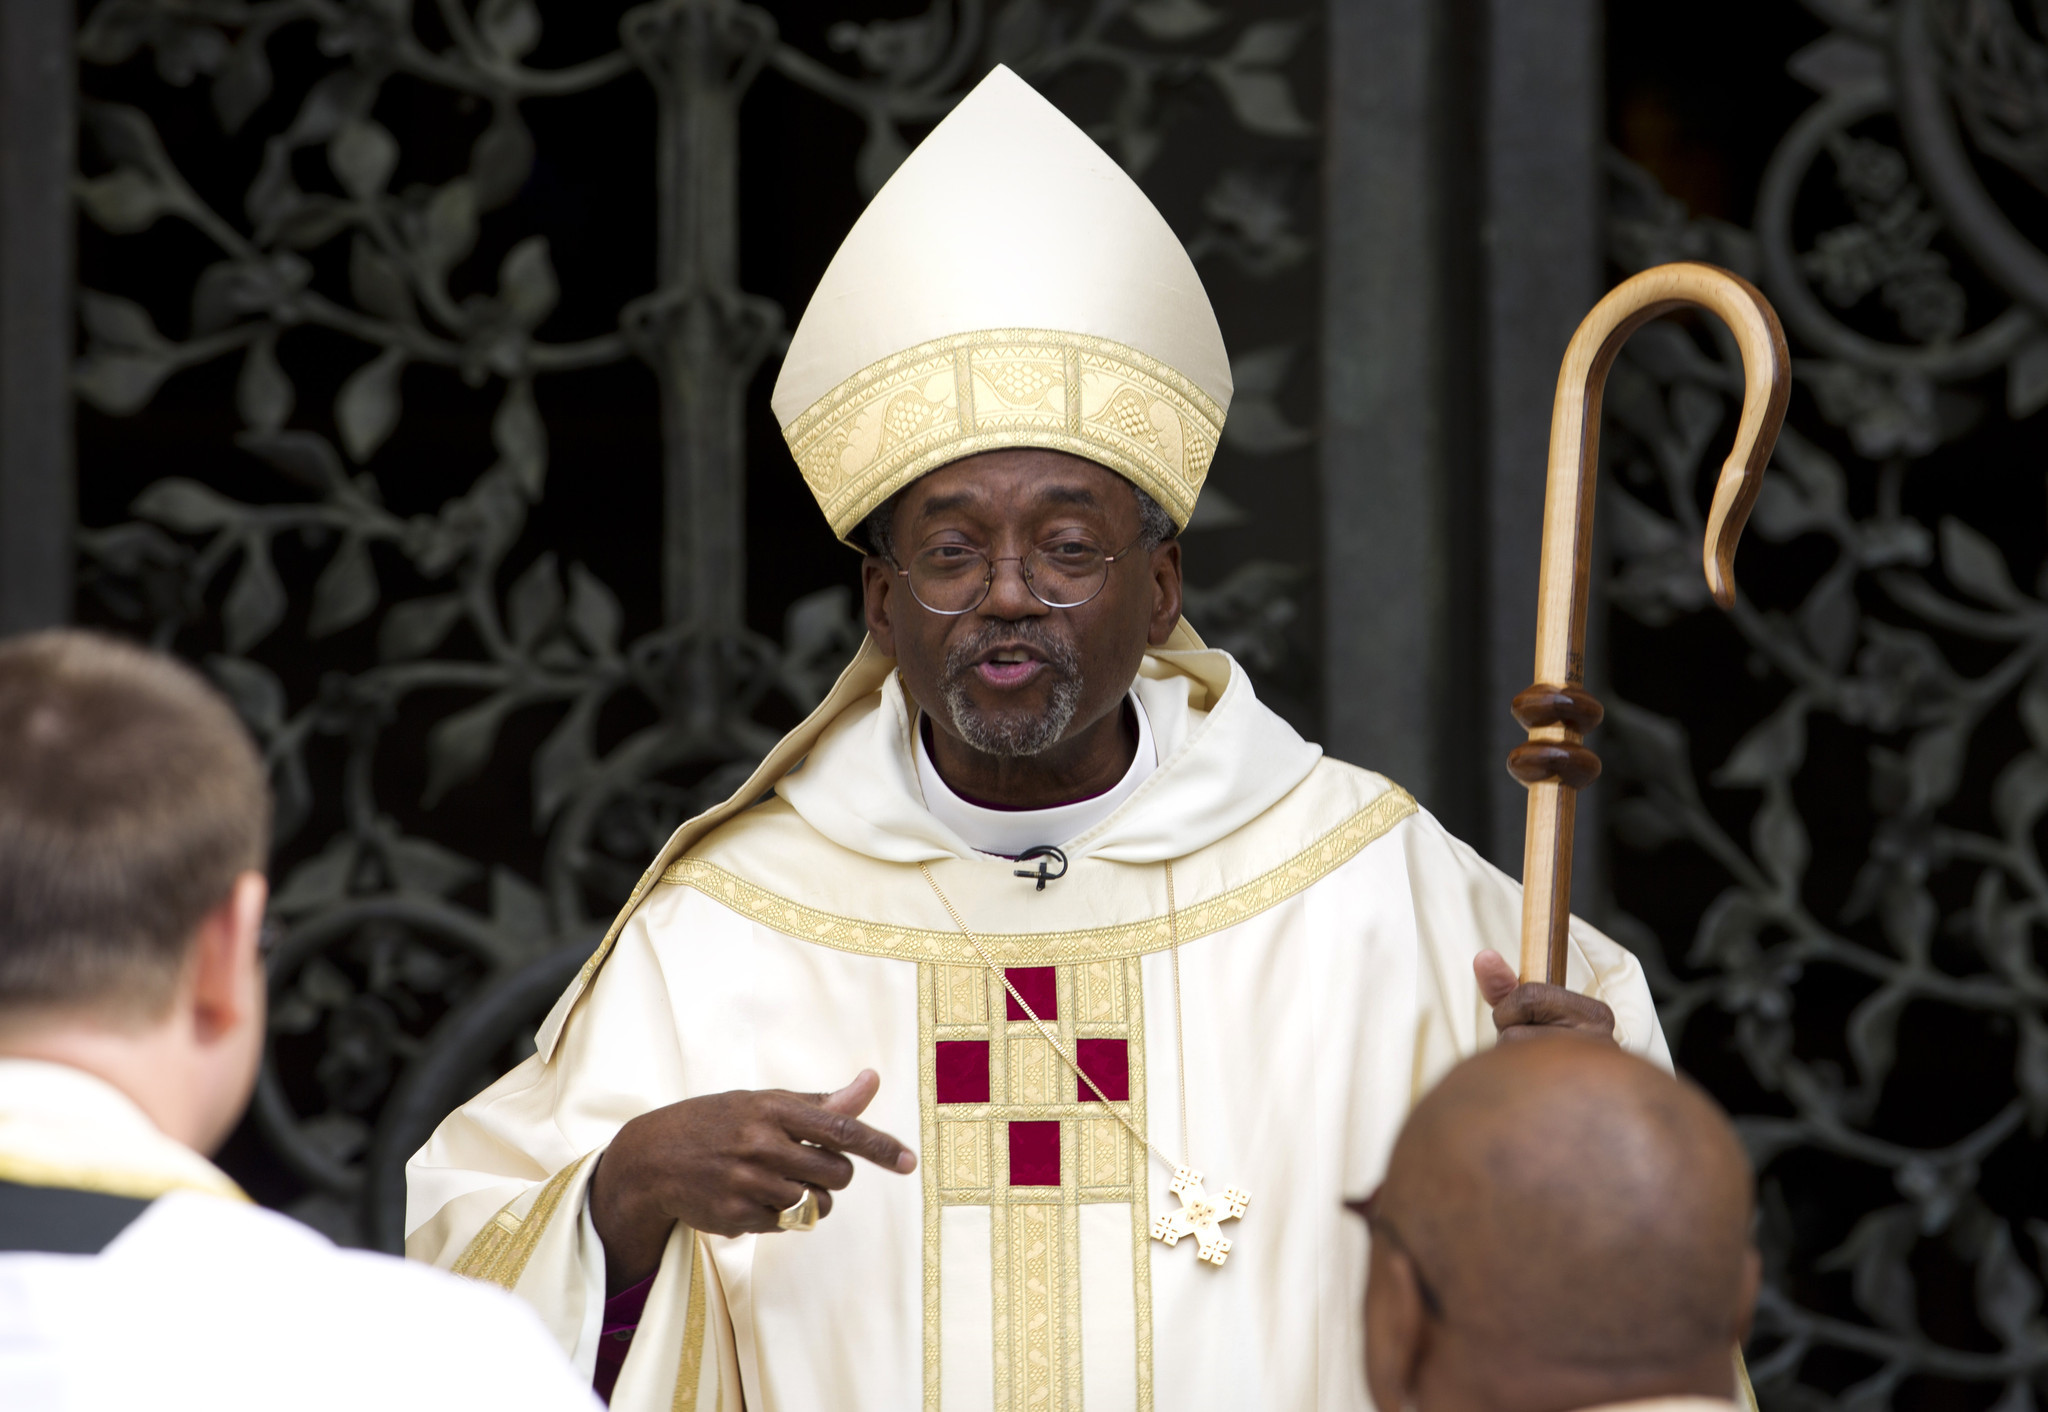 episcopal church anglican leader michael curry gay bishop washington cathedral leaders presiding national marriage archbishop anglicans elect episcopalians sanction md